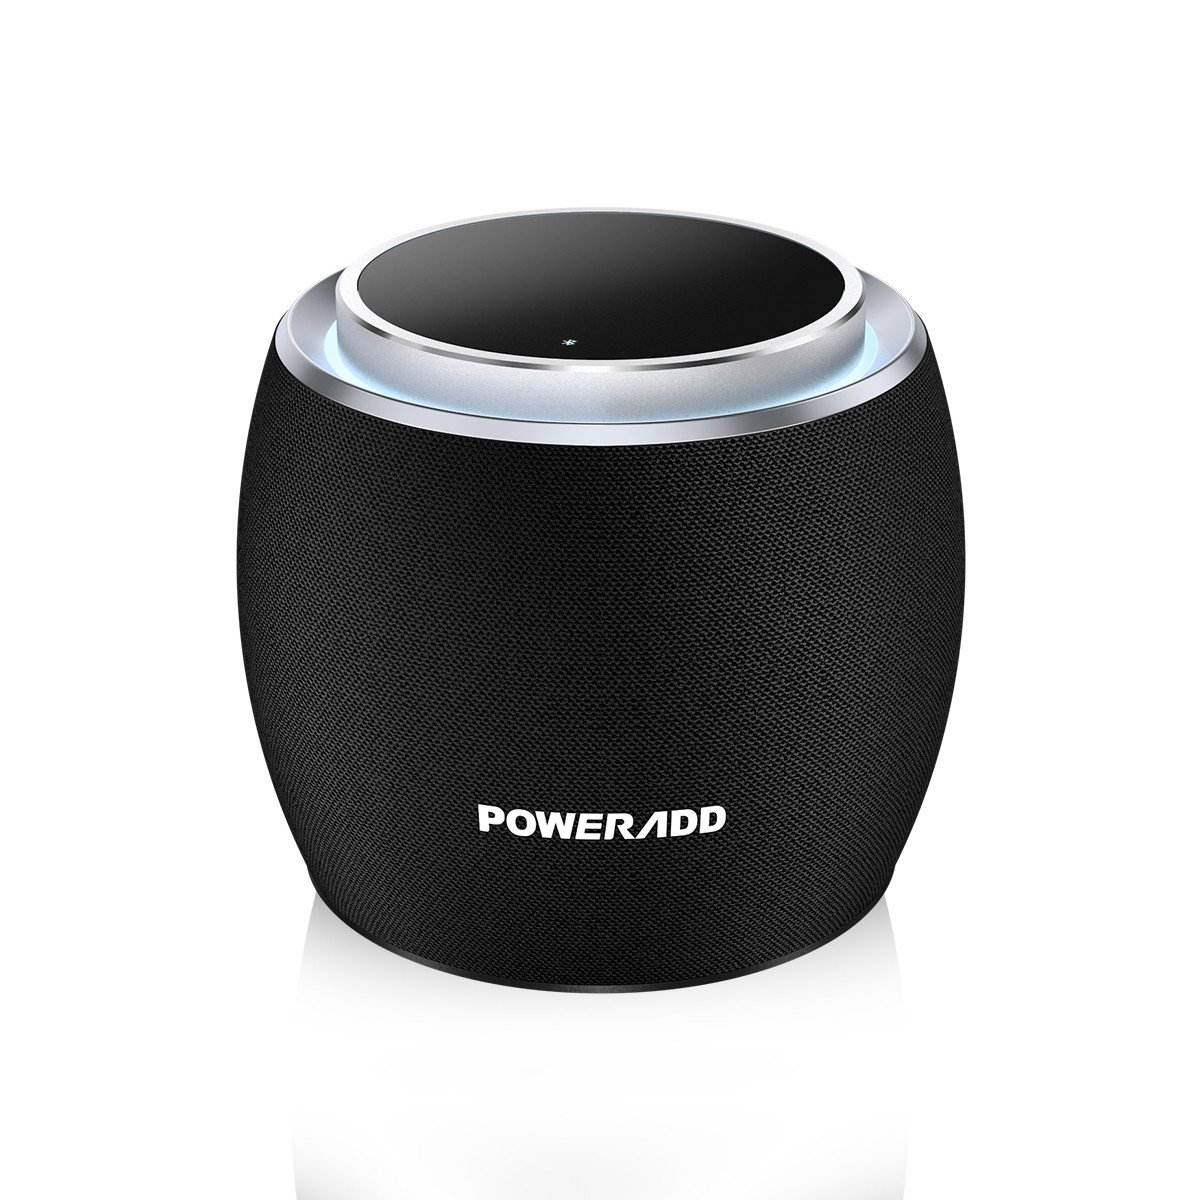 Poweradd Gee-G mini, Super-Portable Bluetooth Speaker with LED Touch Control,5W Speakers,33-Foot Bluetooth Range, 8 Hours Playtime, Enhanced Bass, Built-in Mic for iPhone,for iPad, Samsung, HTC,ect